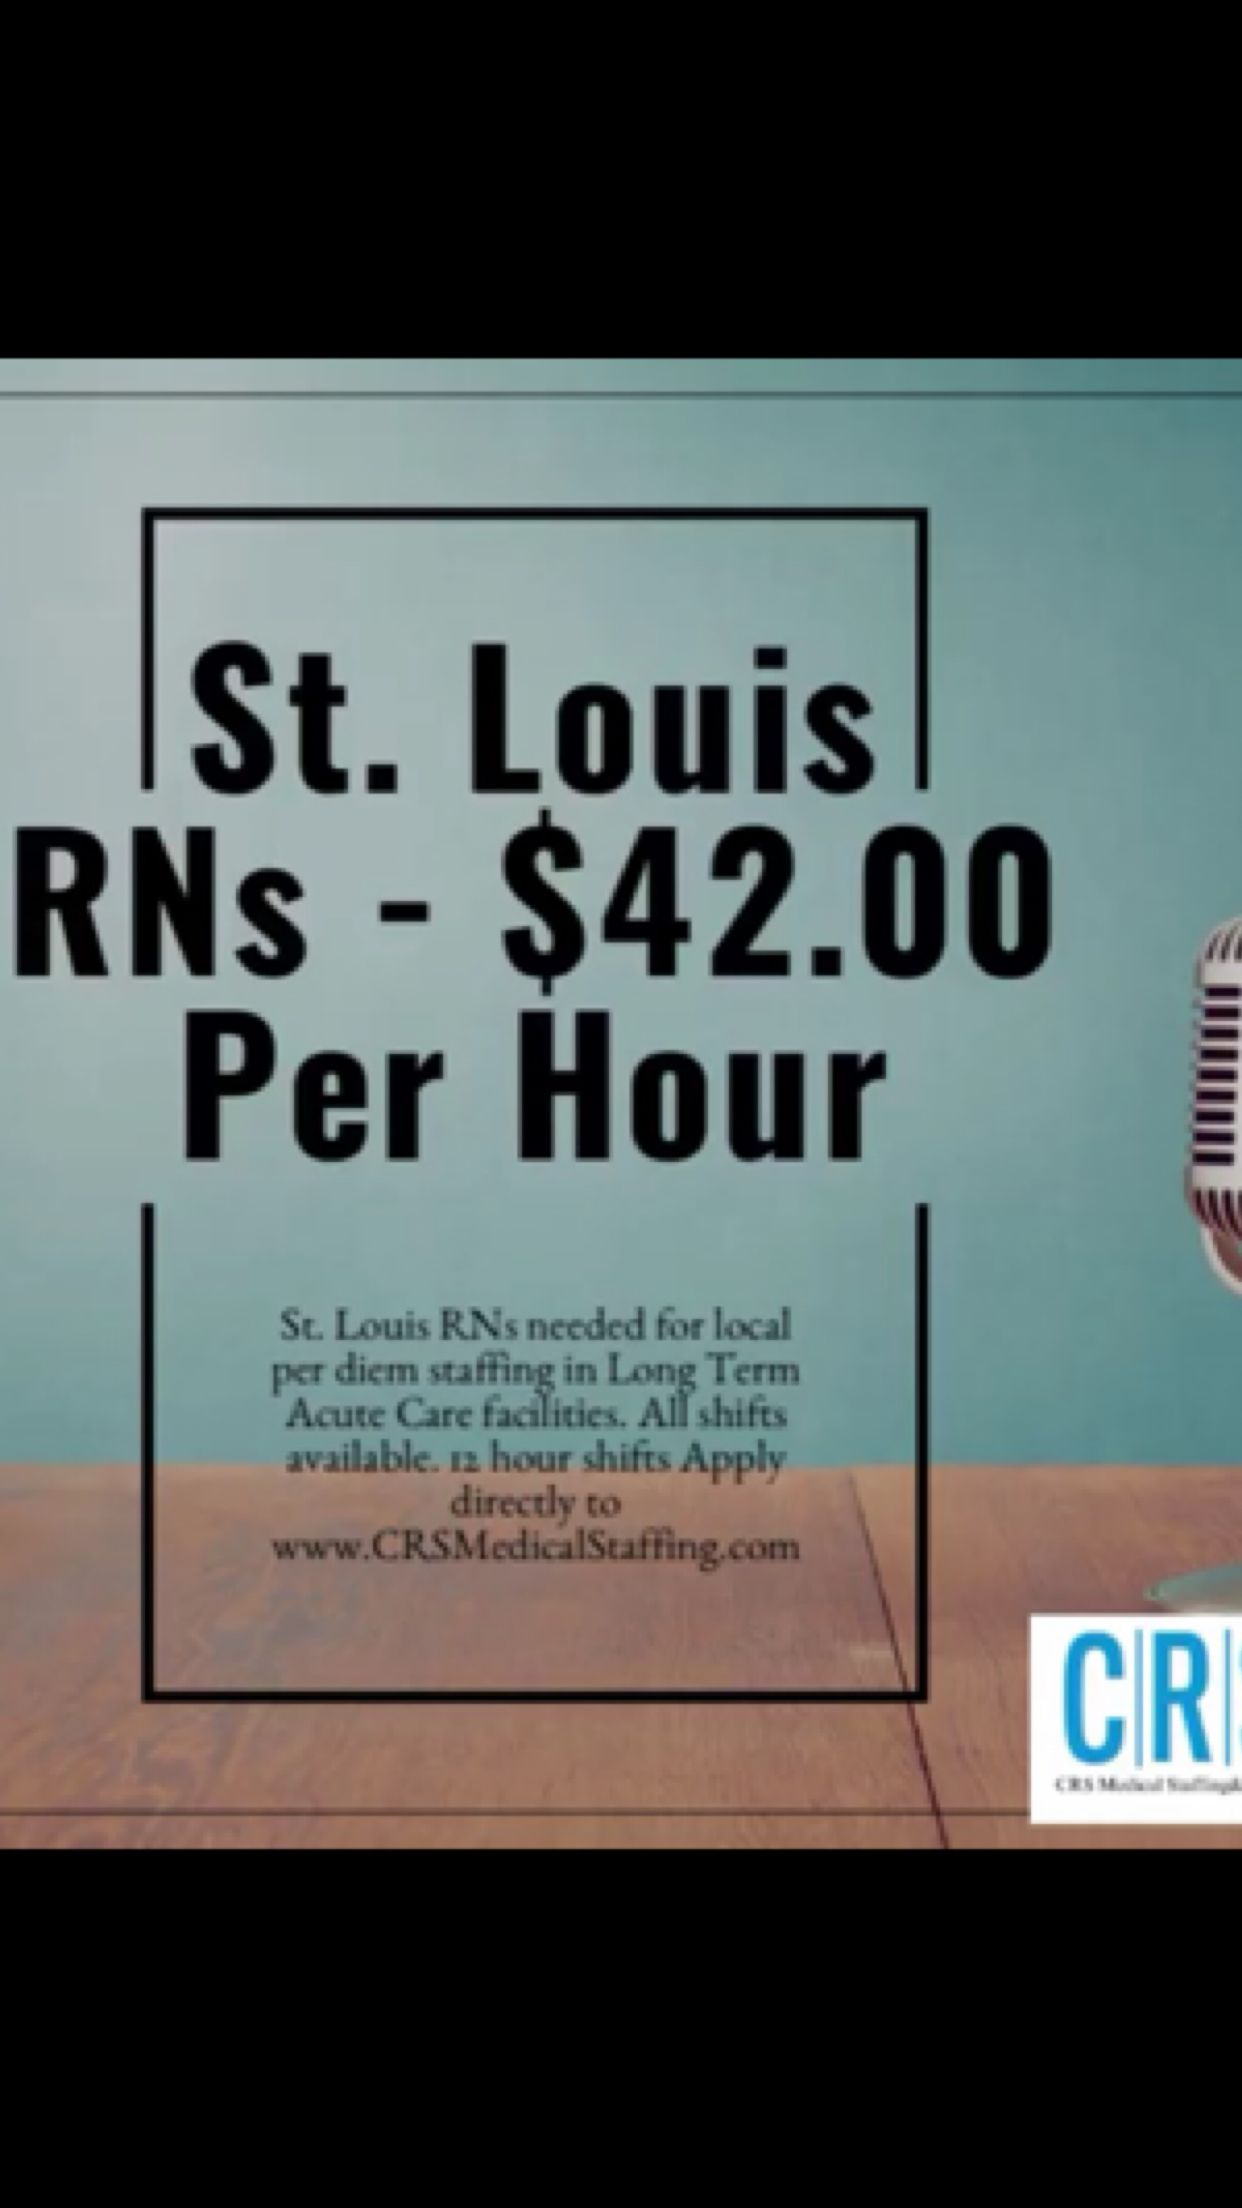 Pin by CRS Medical Staffing & Service on JOB OPPORTUNITIES